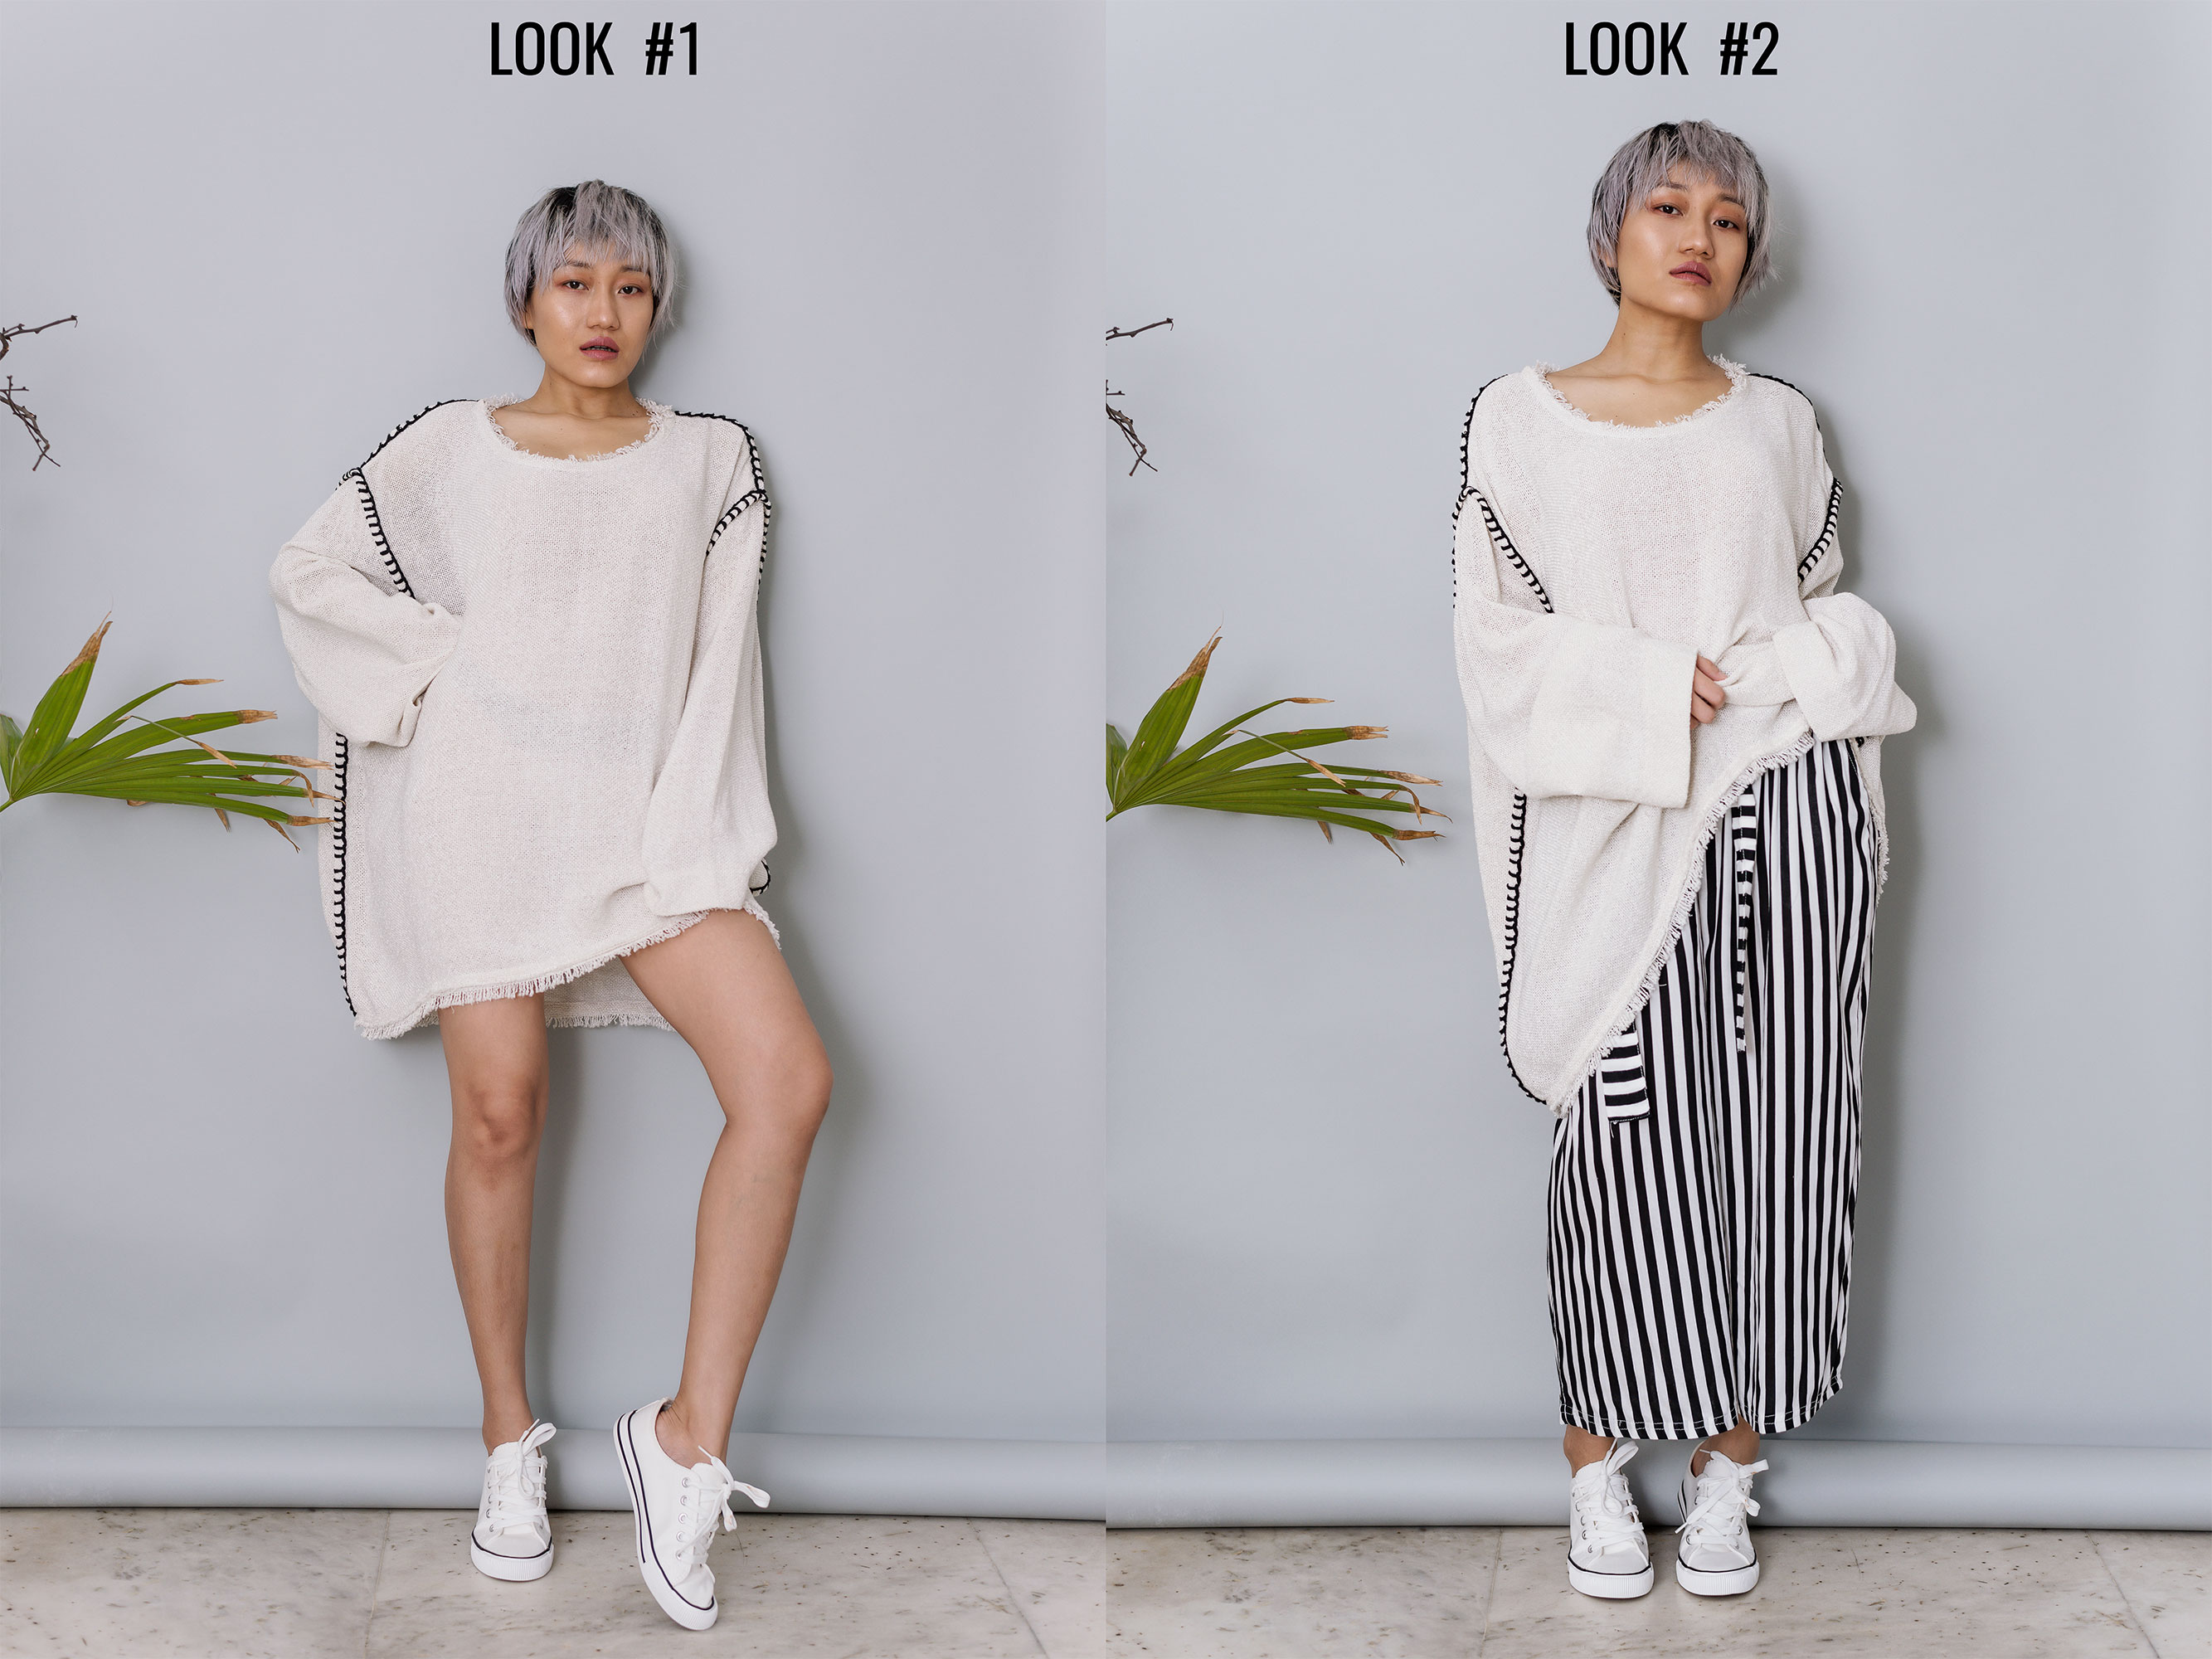 Aien-Jamir-Fashion-&-I-31-Looks-1&2